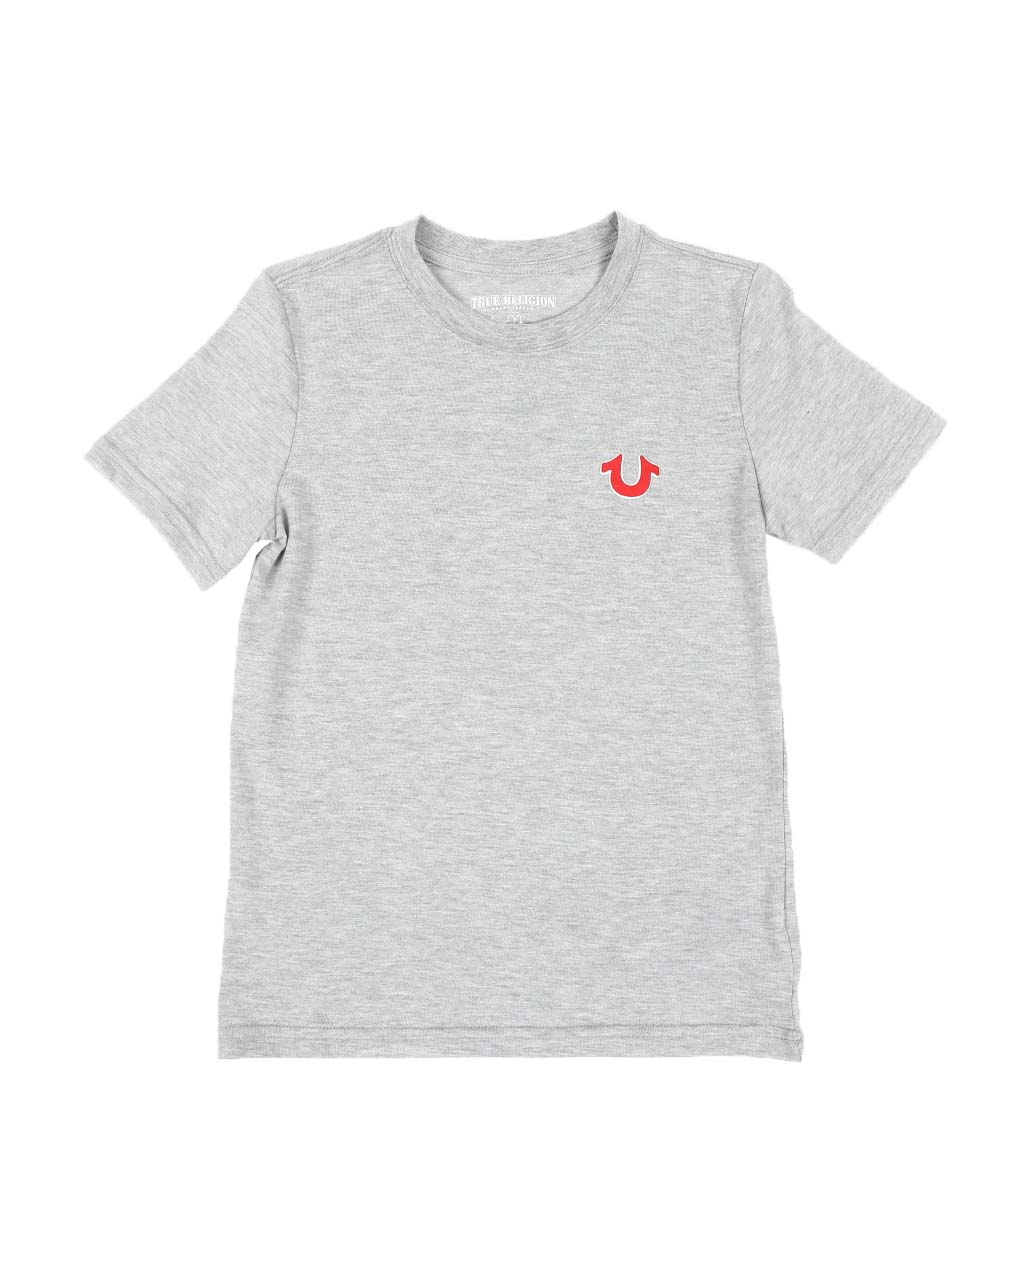 Puff Logo Graphic Tee - FLY GUYZ